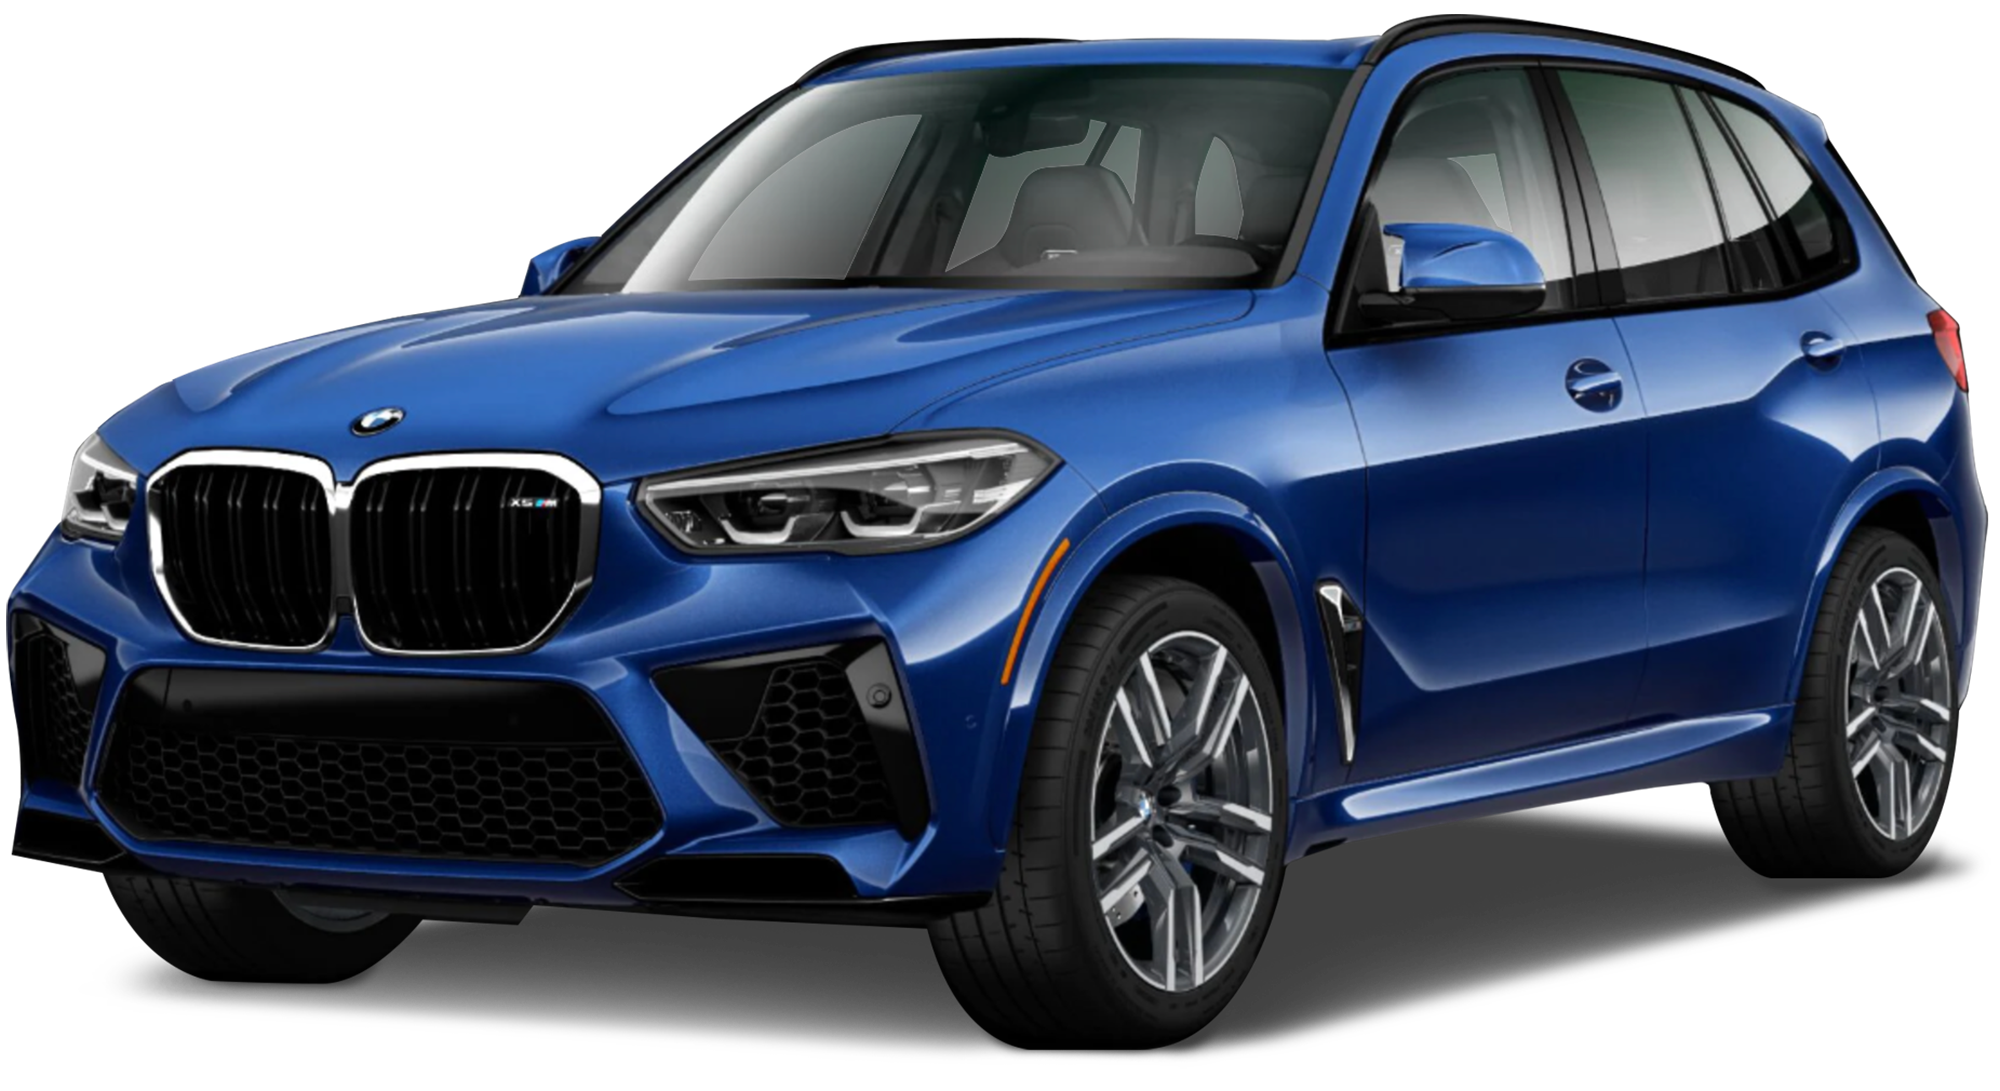 2020 Bmw X5 M Incentives Specials Offers In Bloomfield Nj